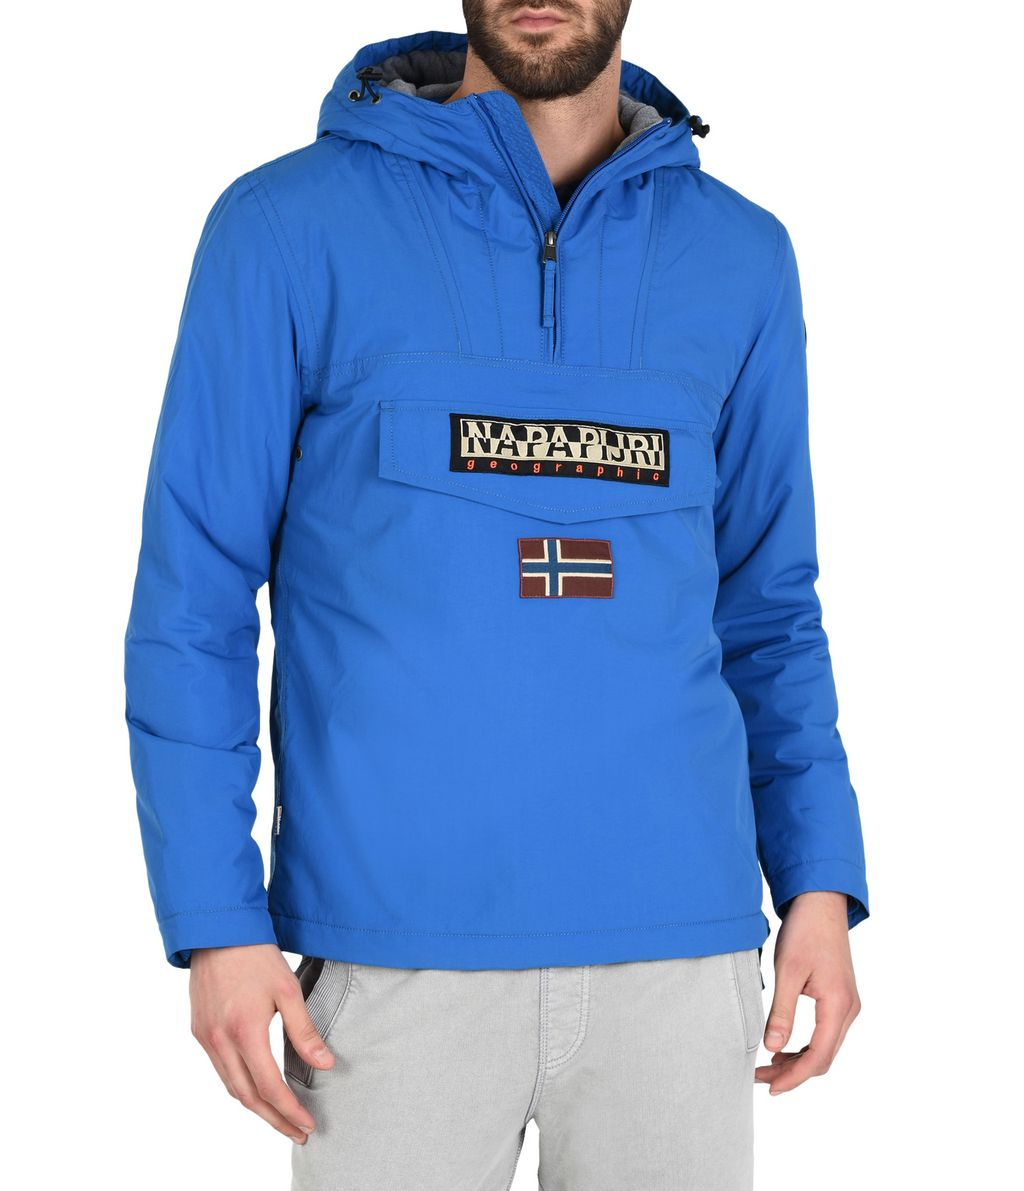 NAPAPIJRI RAINFOREST WINTER MAN RAINFOREST,BLUE